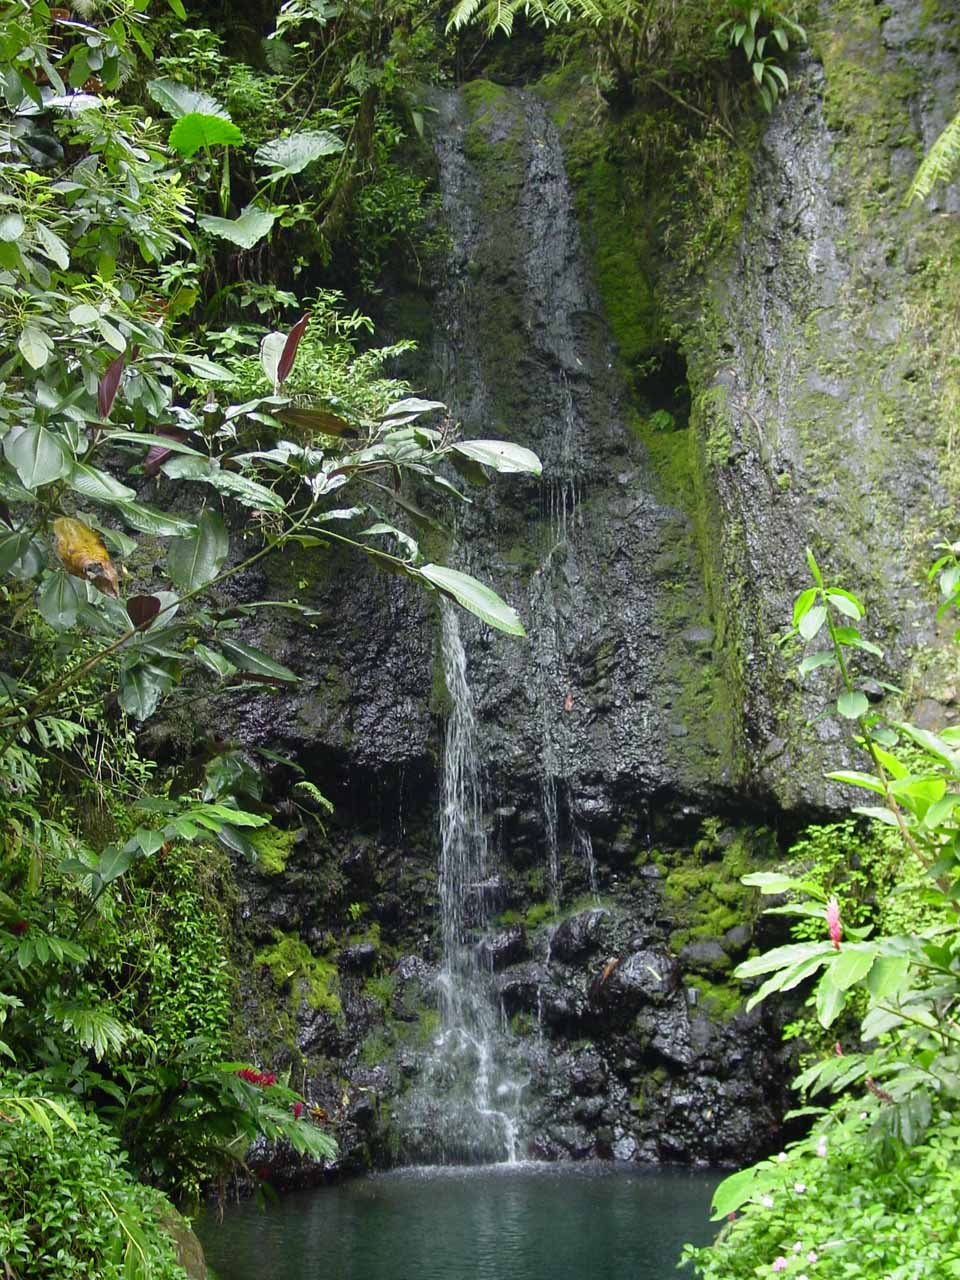 A pretty waterfall on the Vaihiria River Valley side